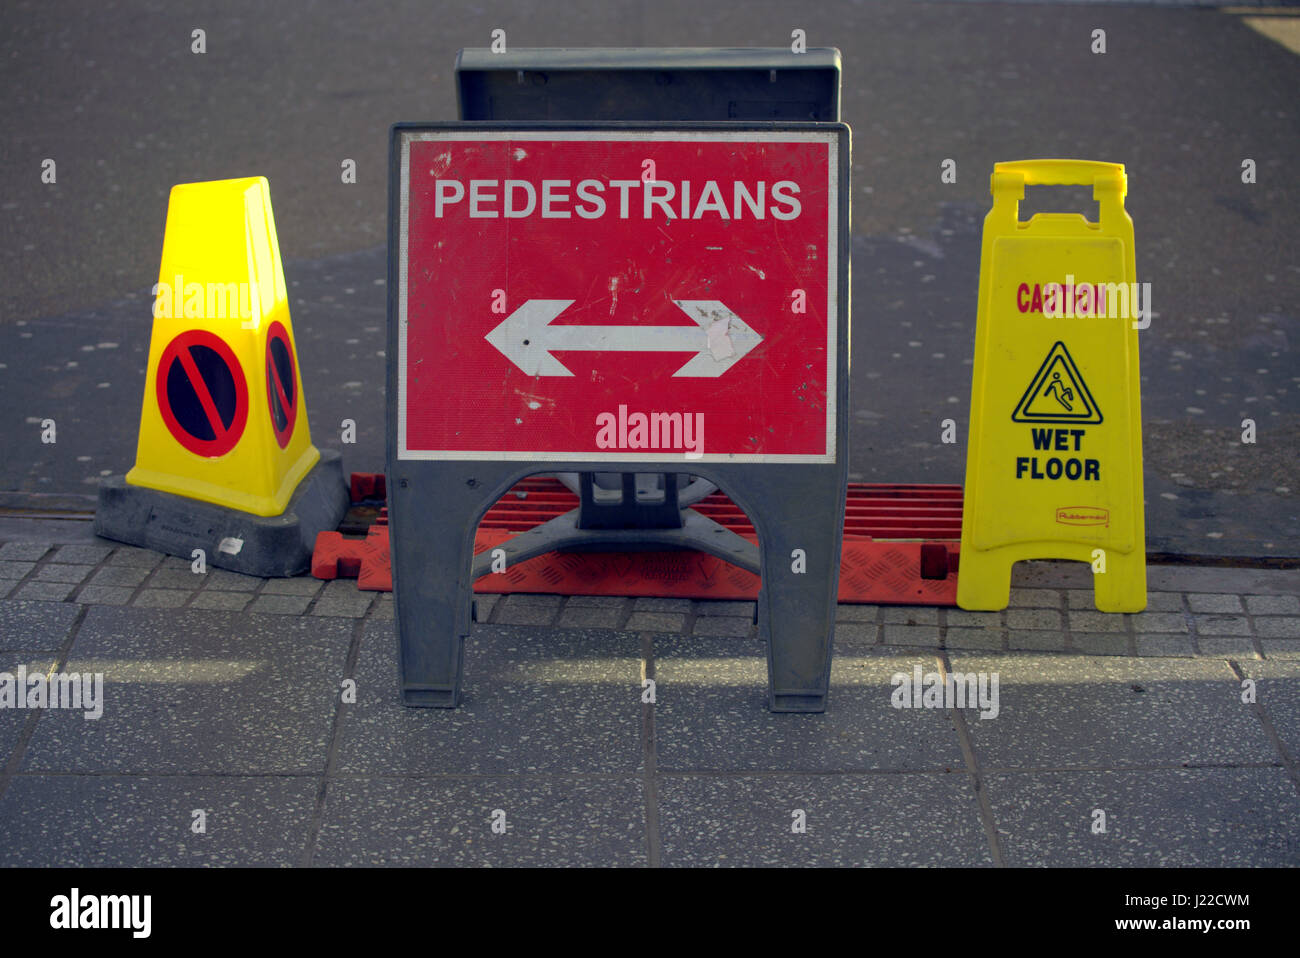 pedestrians this way sign on road path with wet floors warning - Stock Image